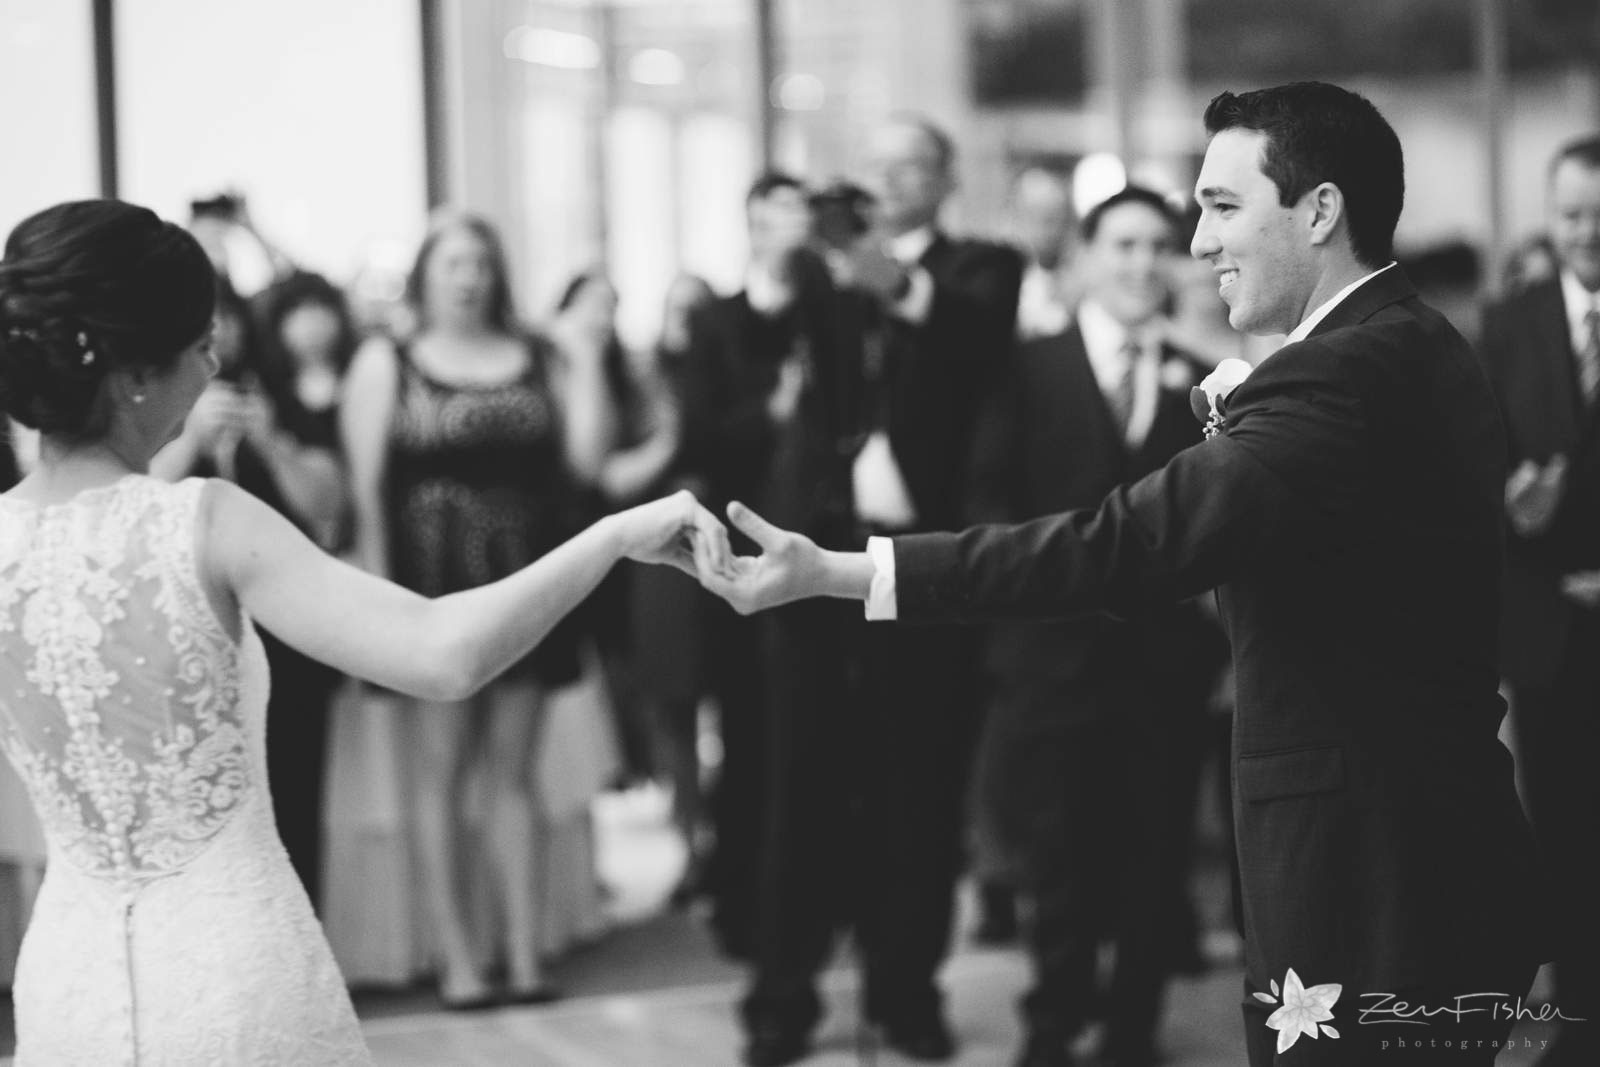 Bride and groom dancing during first dance, groom smiling at bride, black and white.